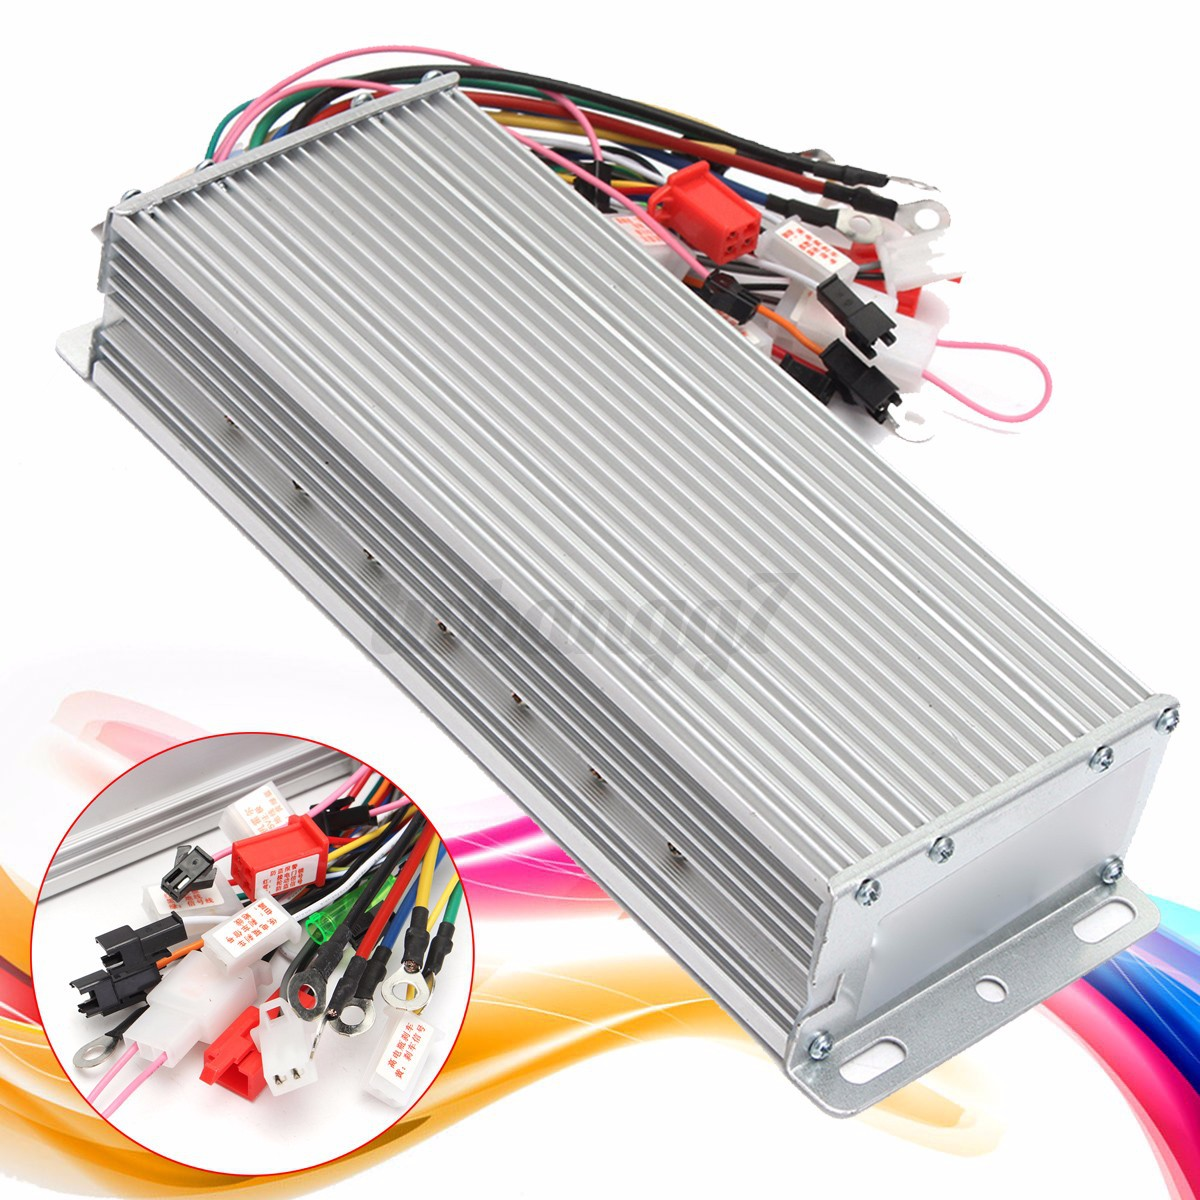 48v Dc 1500w Brushless Motor Controller For E Bike Scooter